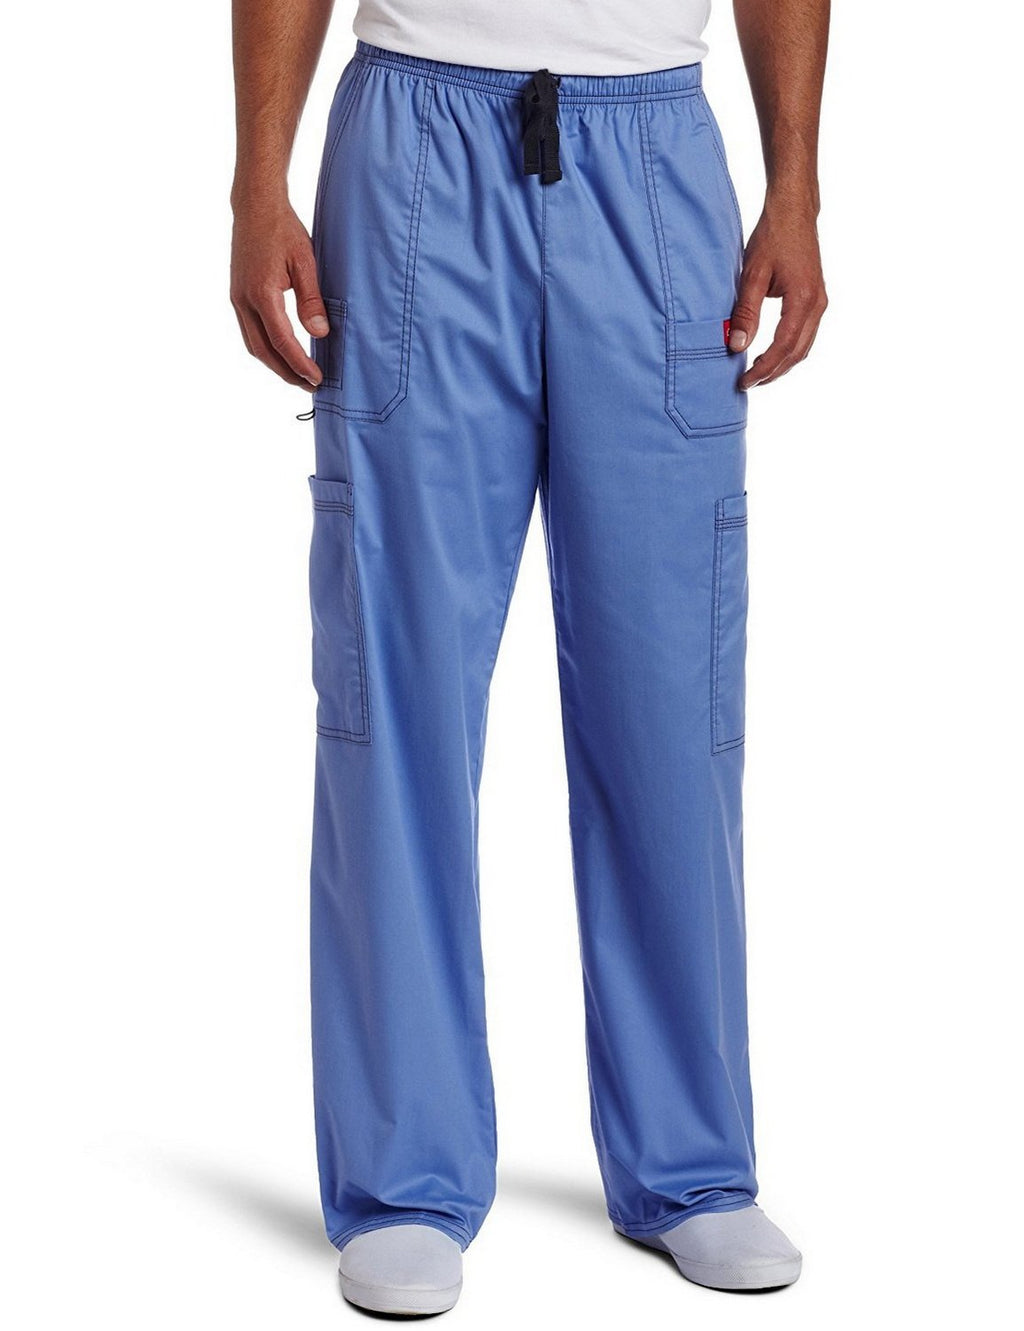 dickies-generation-flex-men's-youtility-scrub-pant